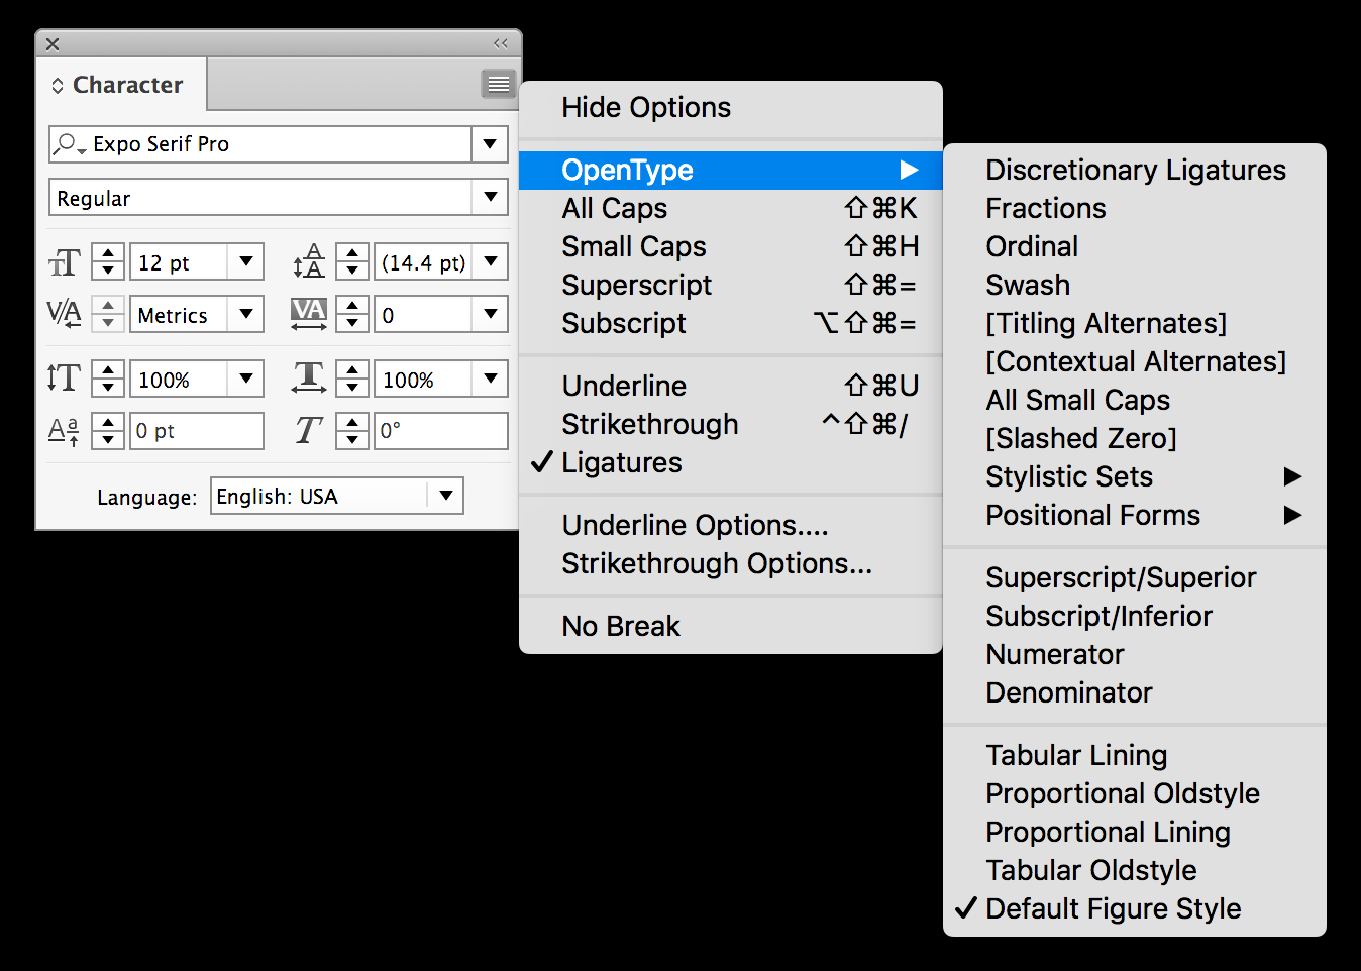 The available OpenType features are located in the software's OpenType panel, as shown for InDesign. If a category is bracketed, it is not available in that particular font.